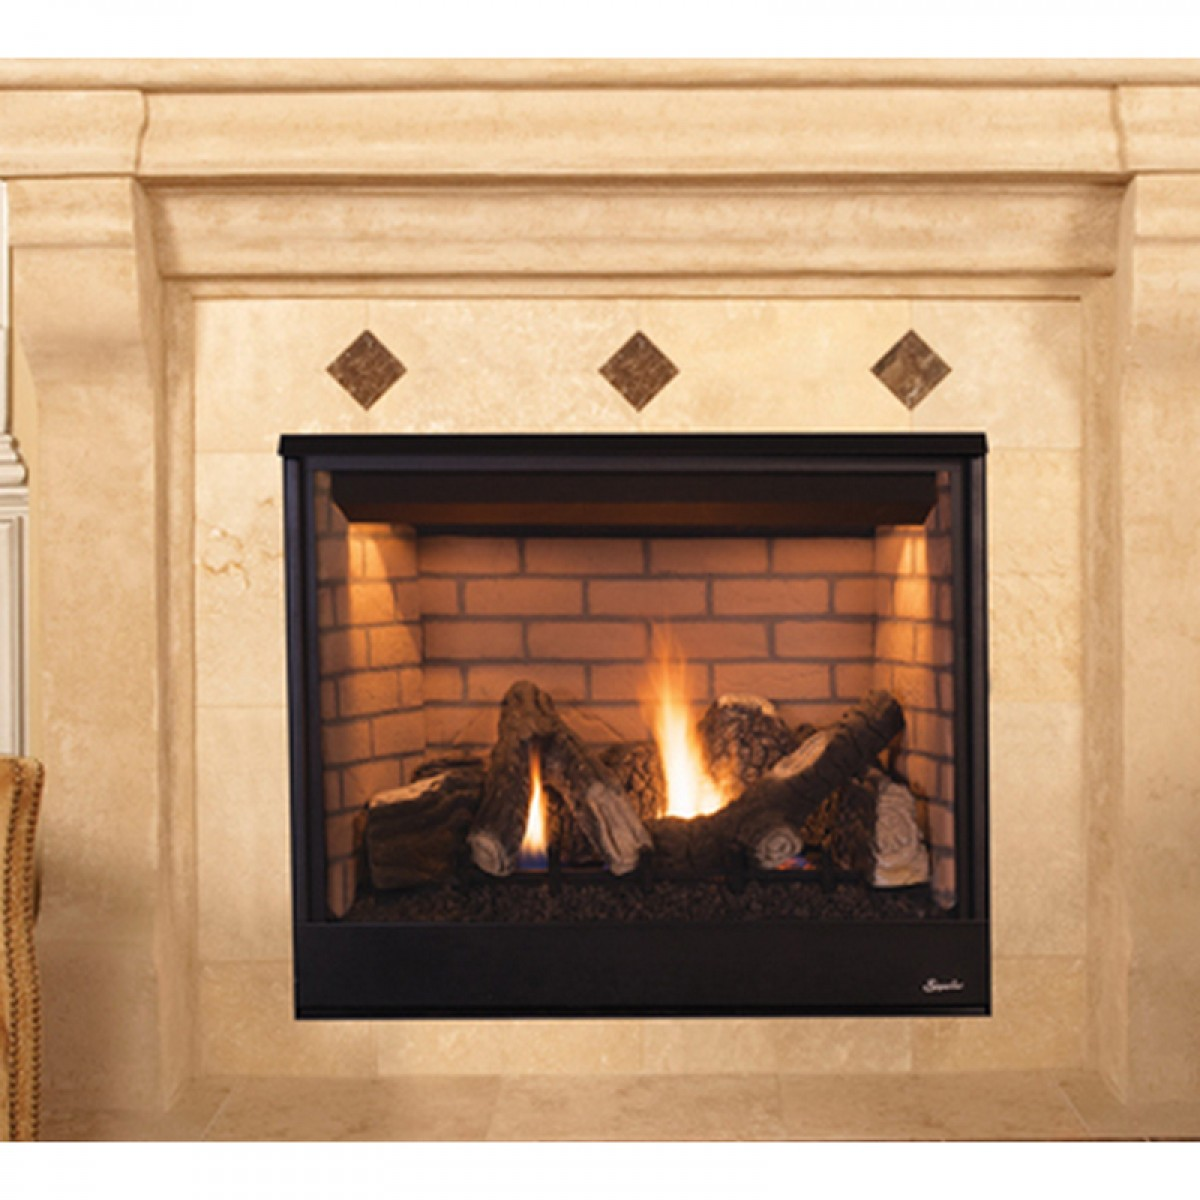 ventless vent hearthsense fireplace model product percent b energy are heating efficient procom as